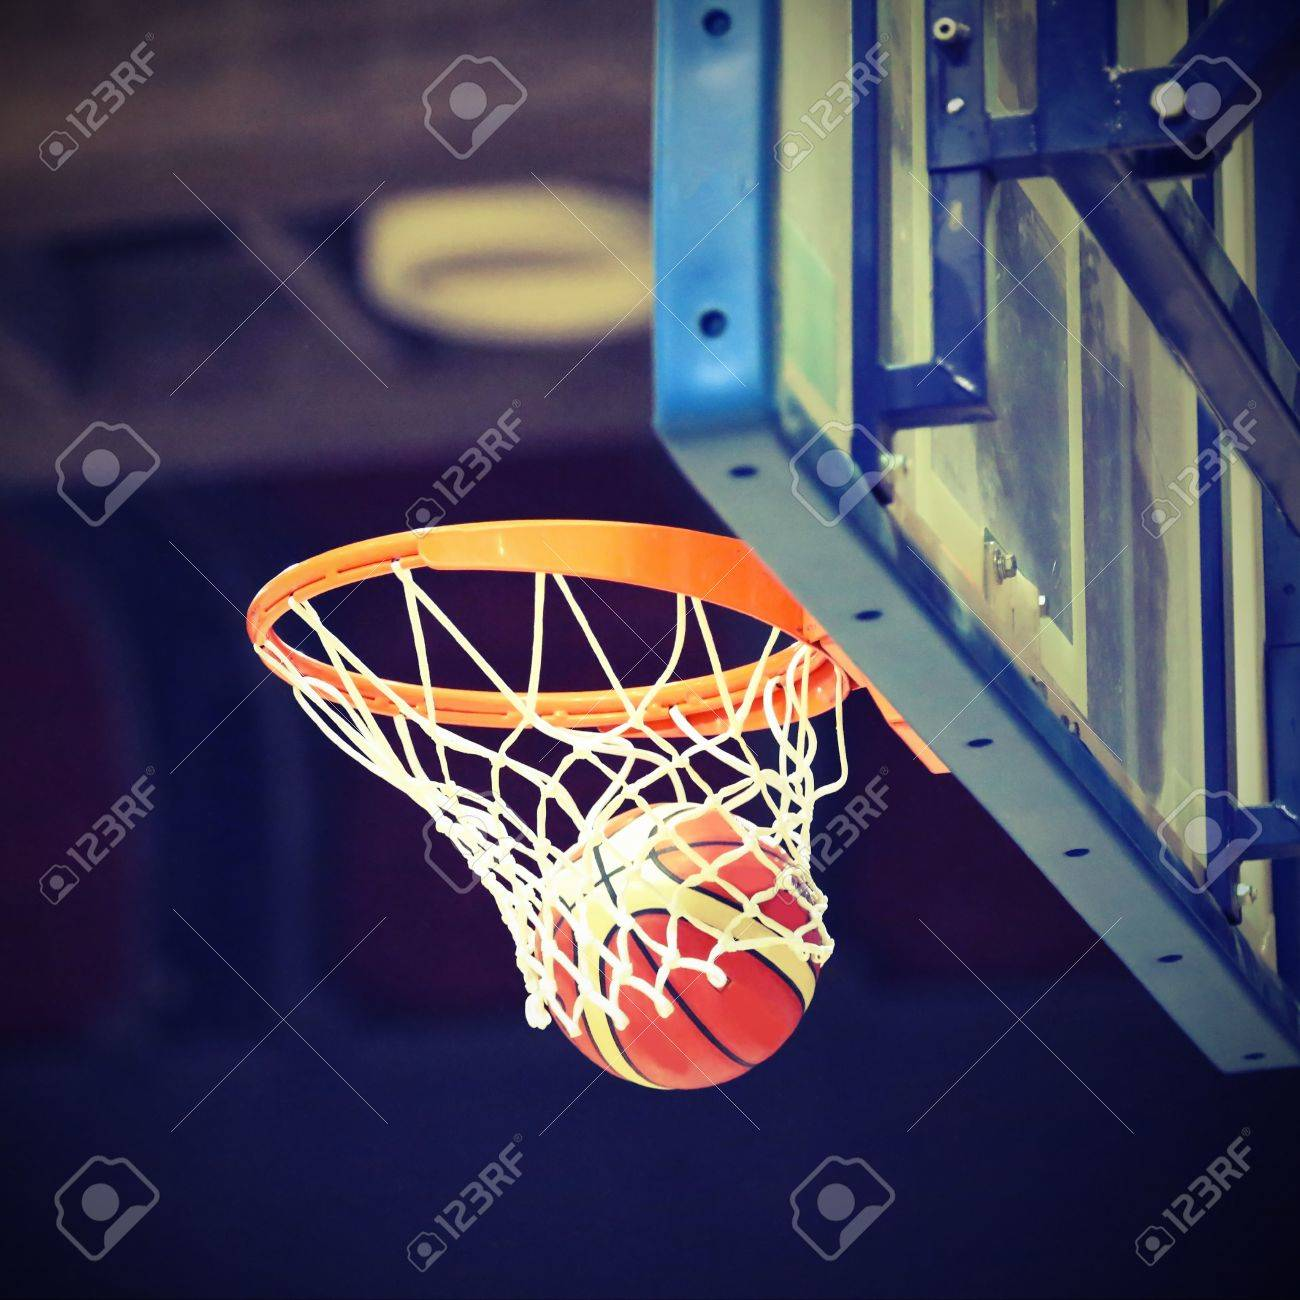 basketball going into the basket after a fantastic shot stock photo